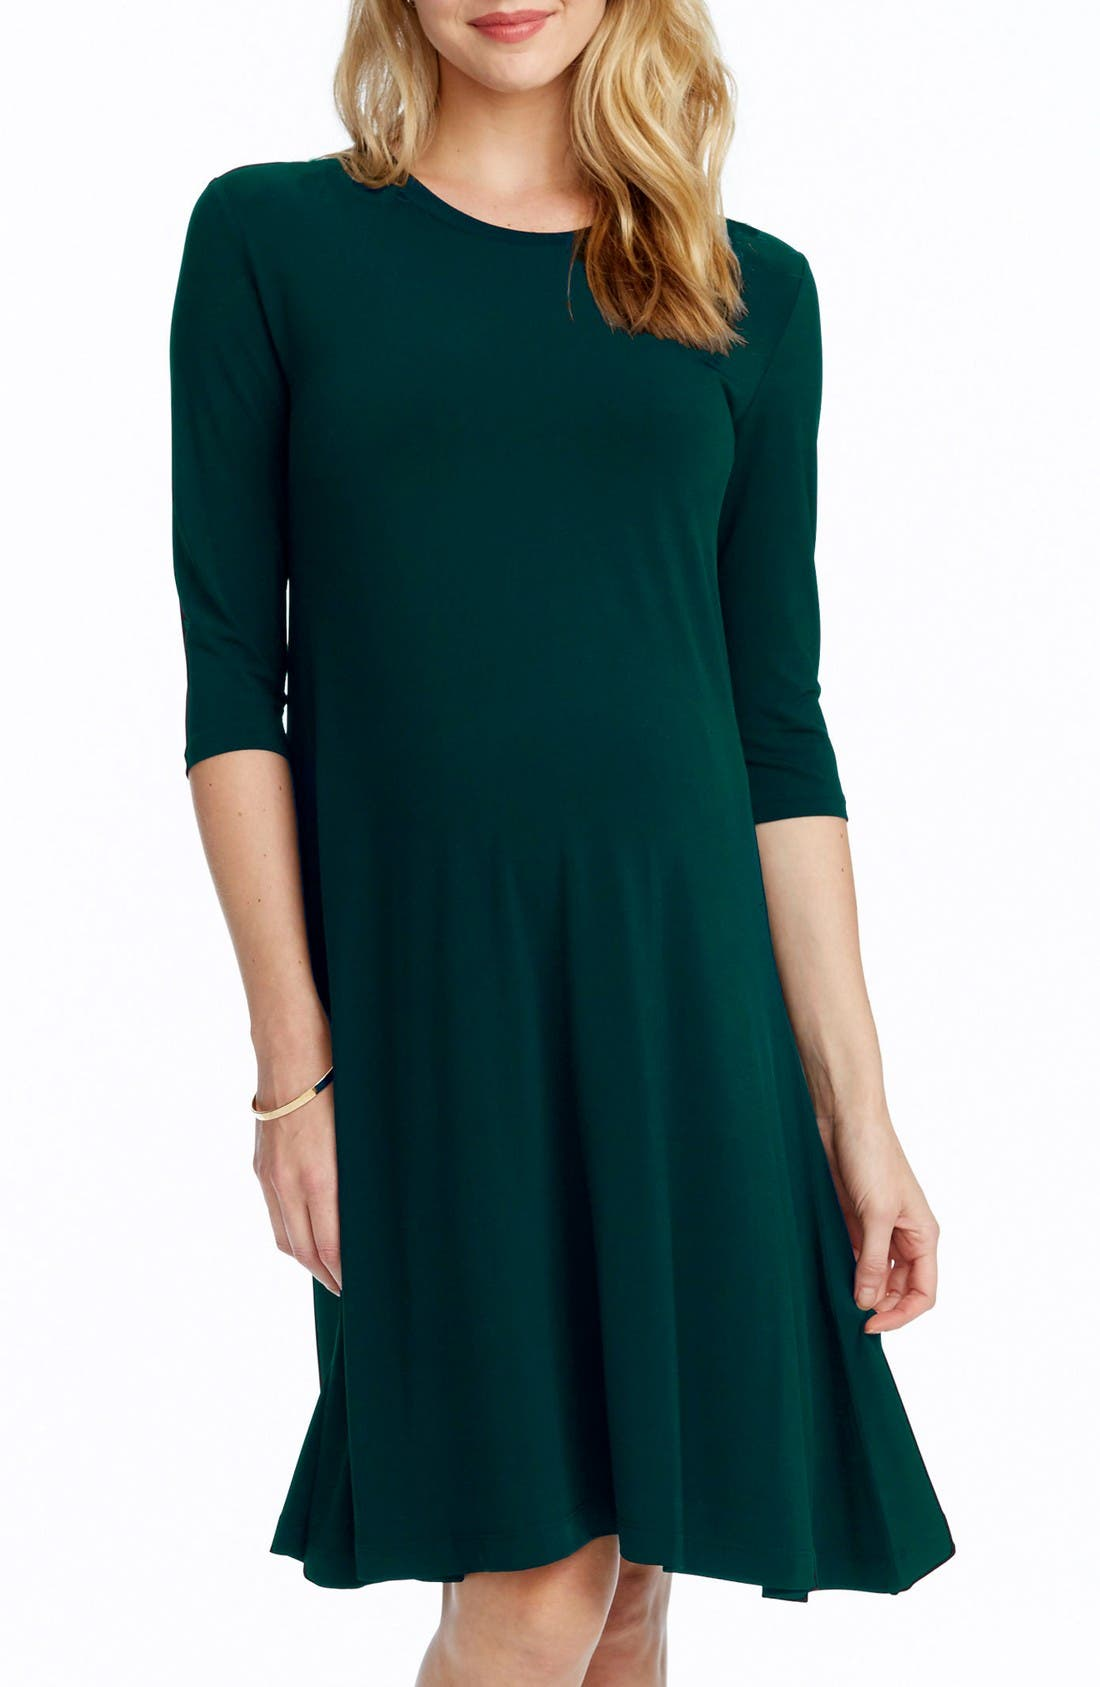 Rosie Pope Tamra Maternity Swing Dress